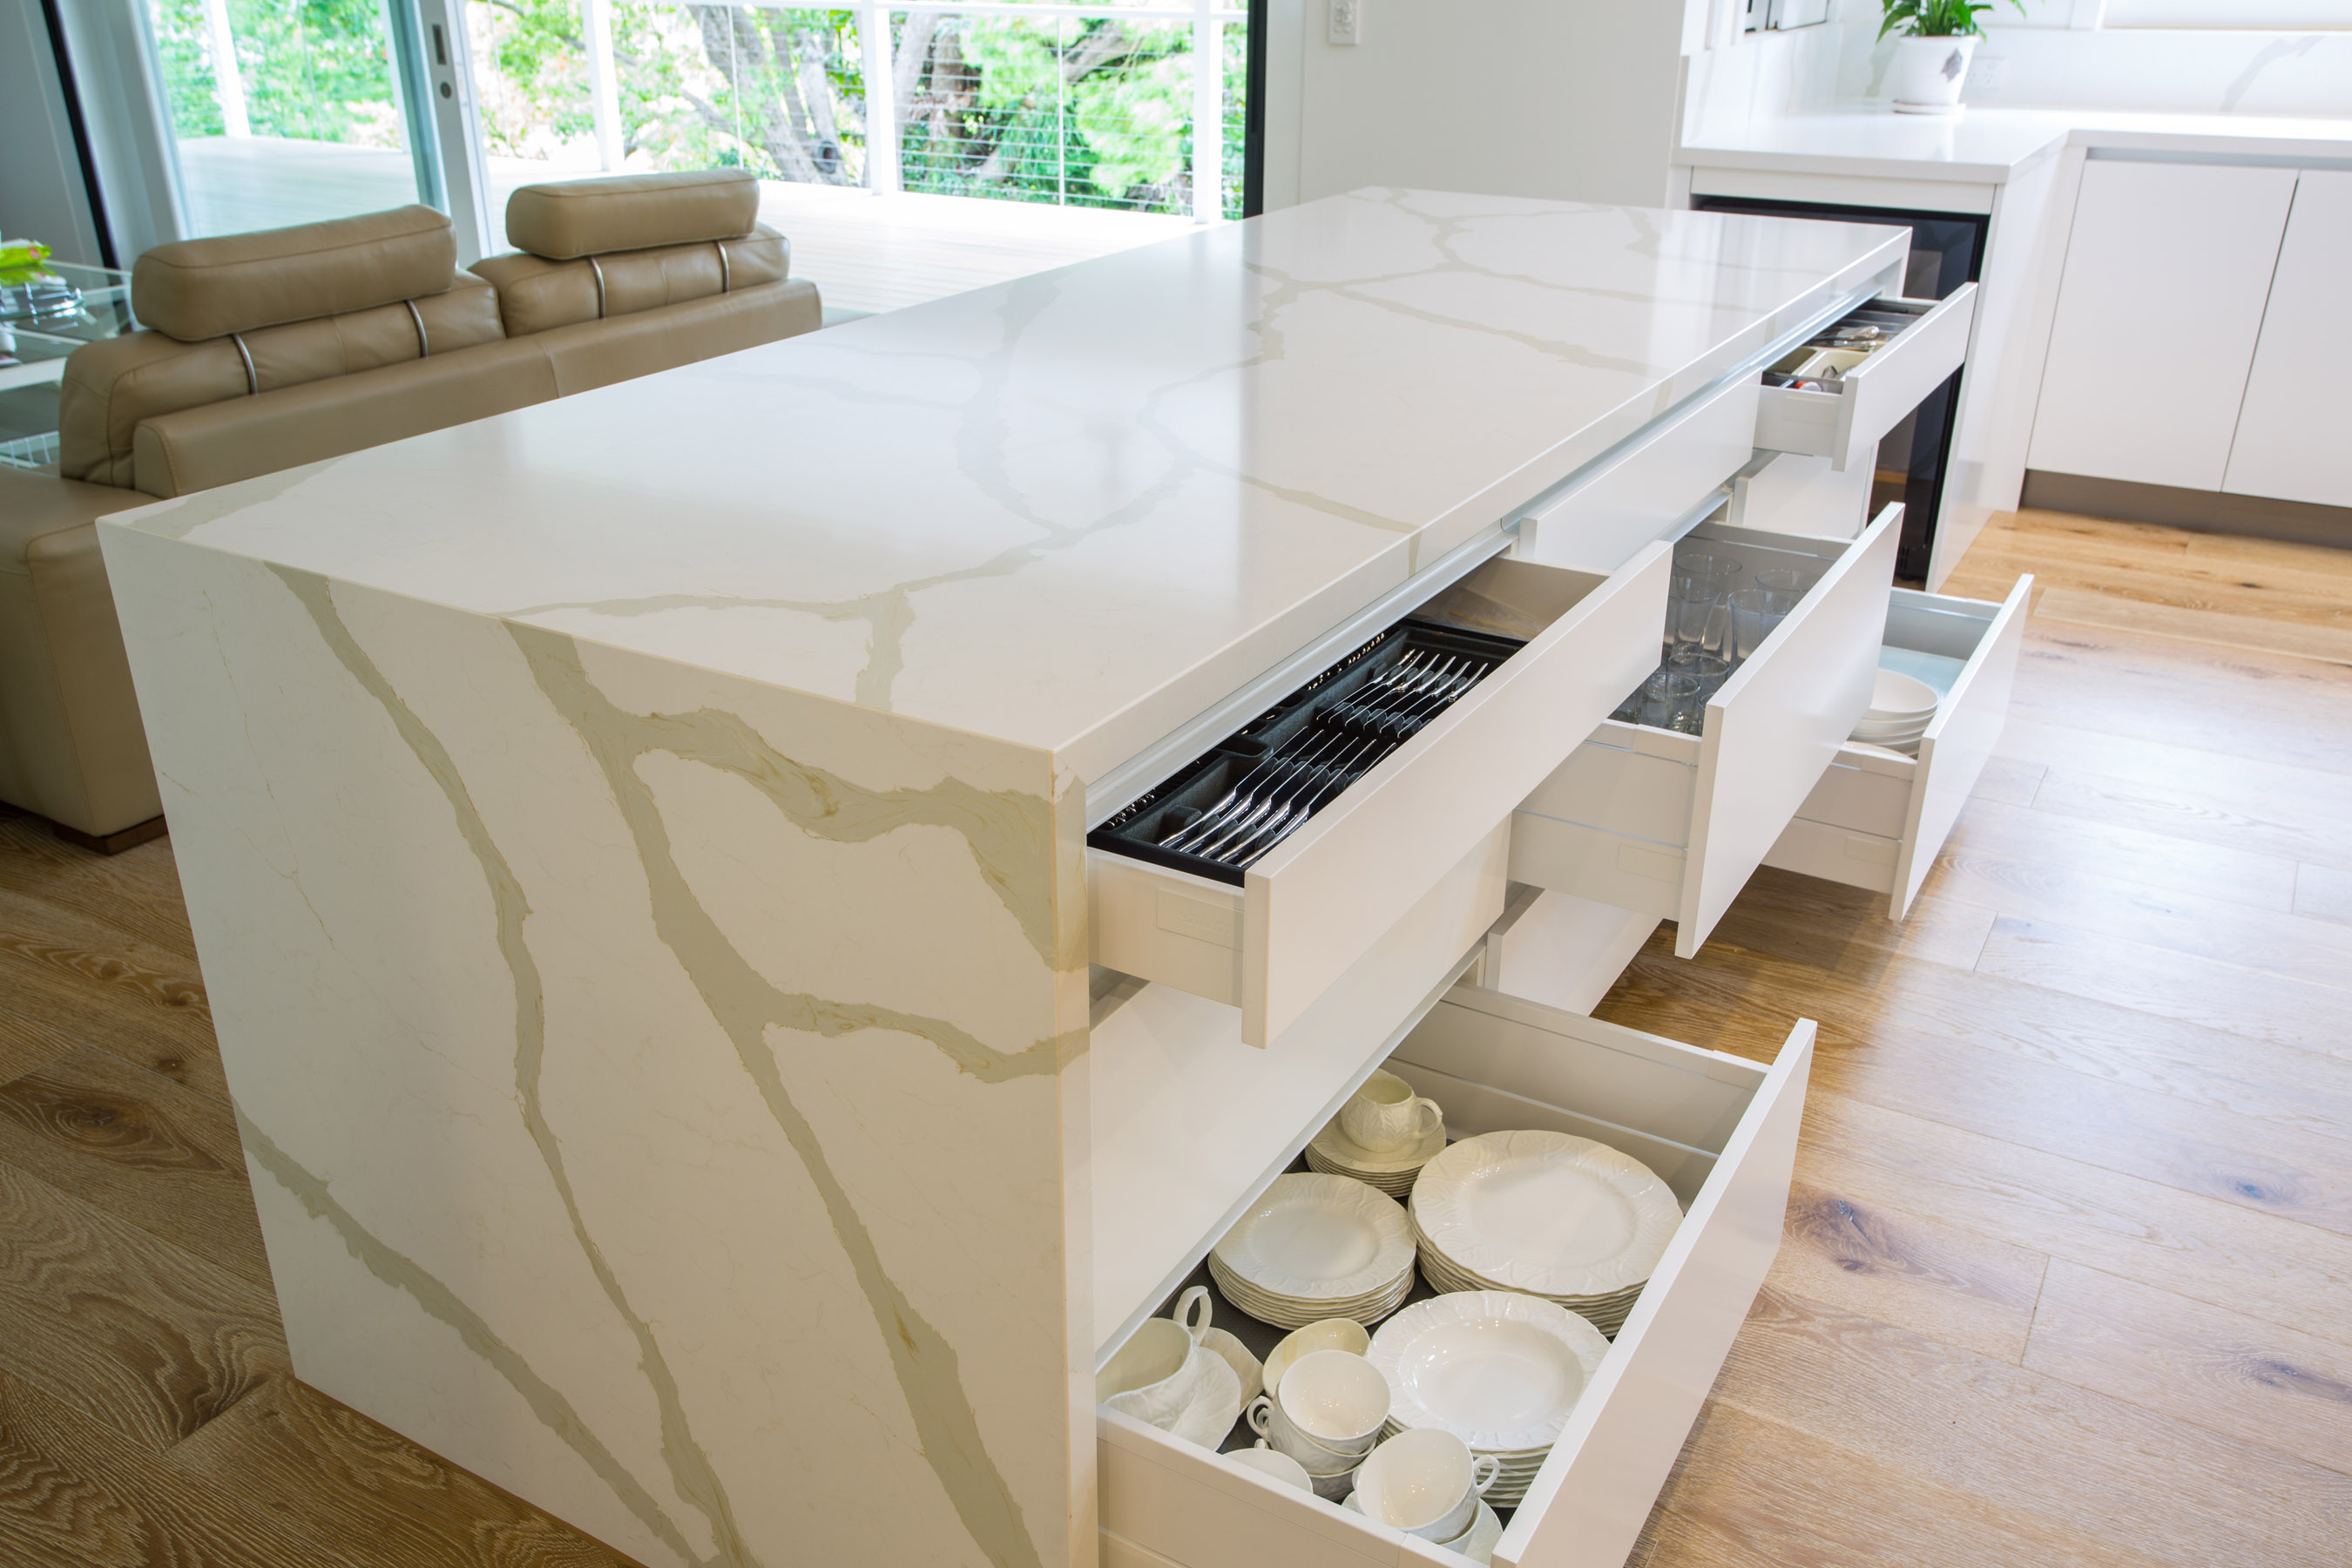 Featuring large Blum tandembox drawers with soft close